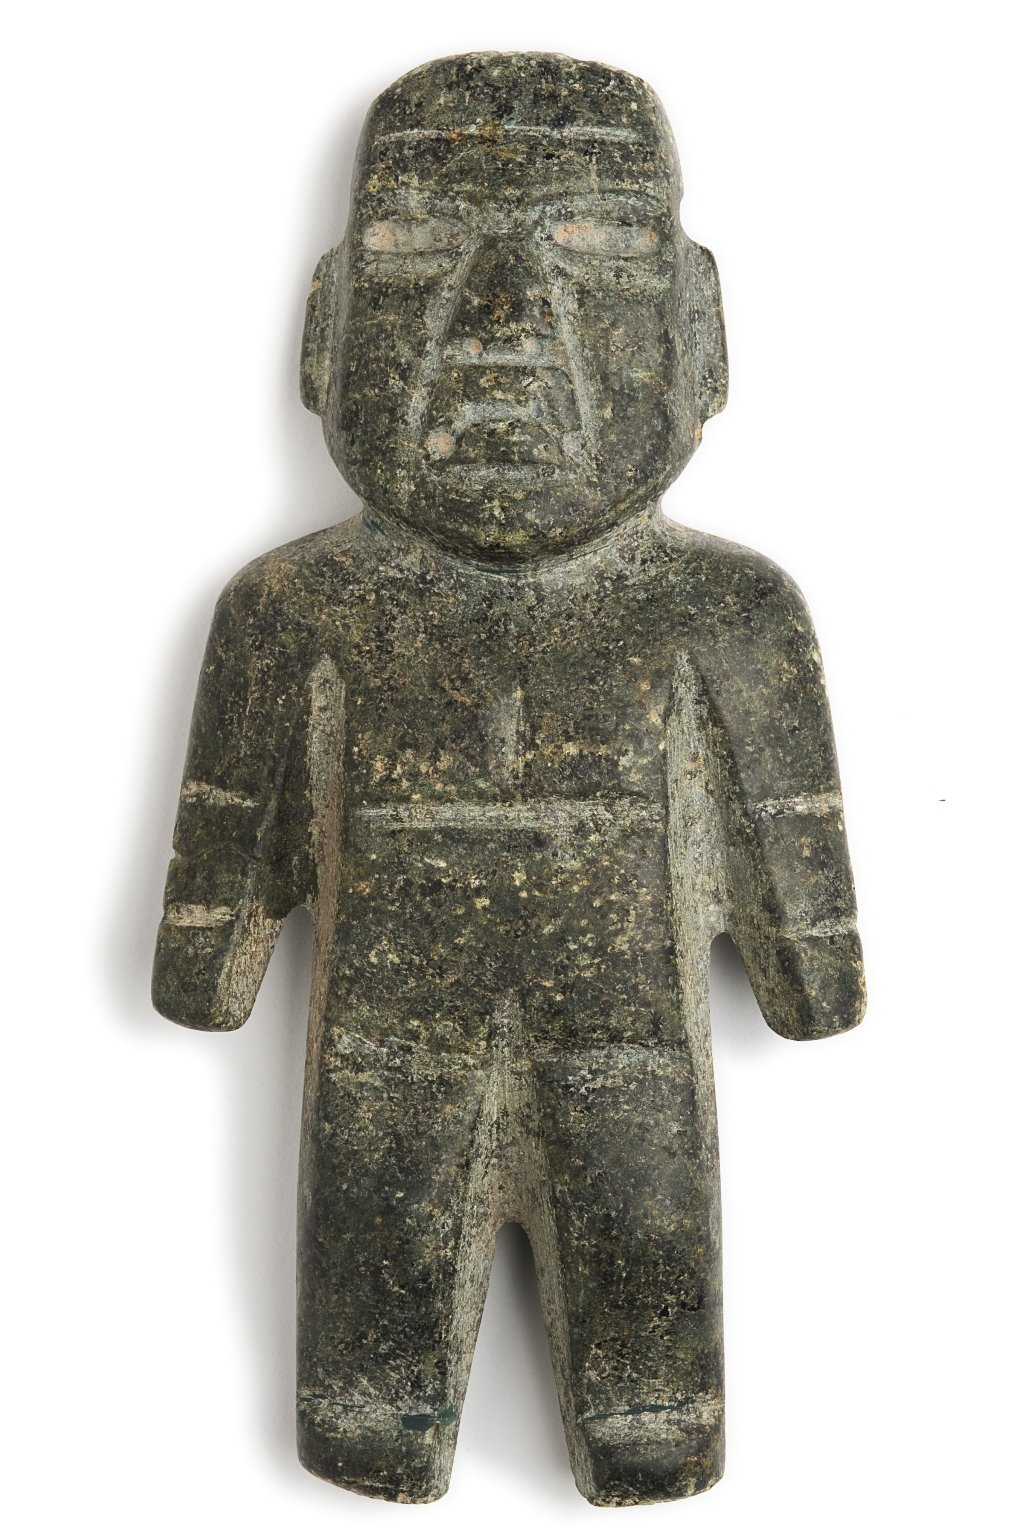 Carved stone figurine